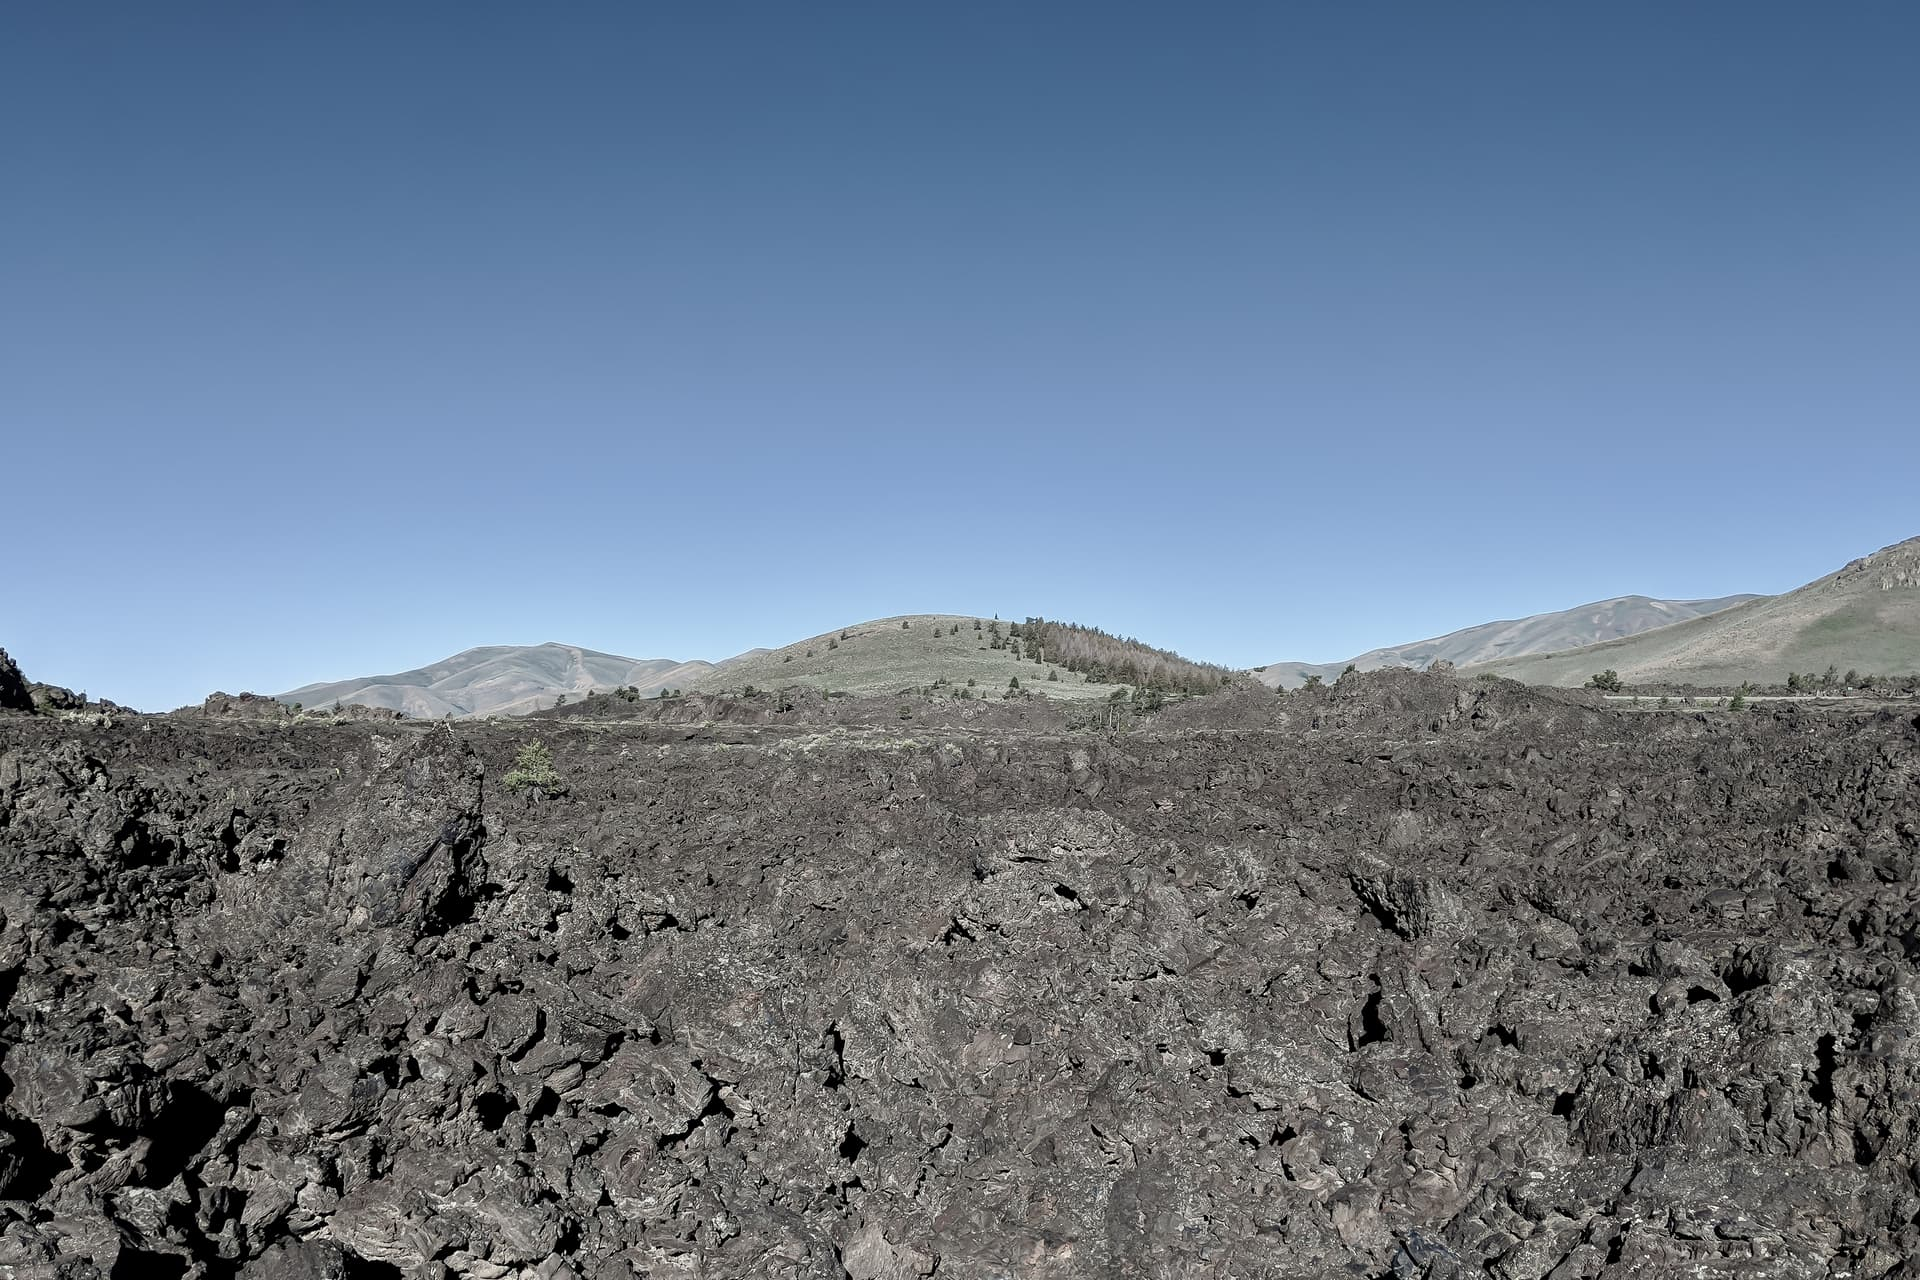 A black, jagged lava field. In the distance are a set of low, scrub- and pine-covered rises of obvious volcanic origin.